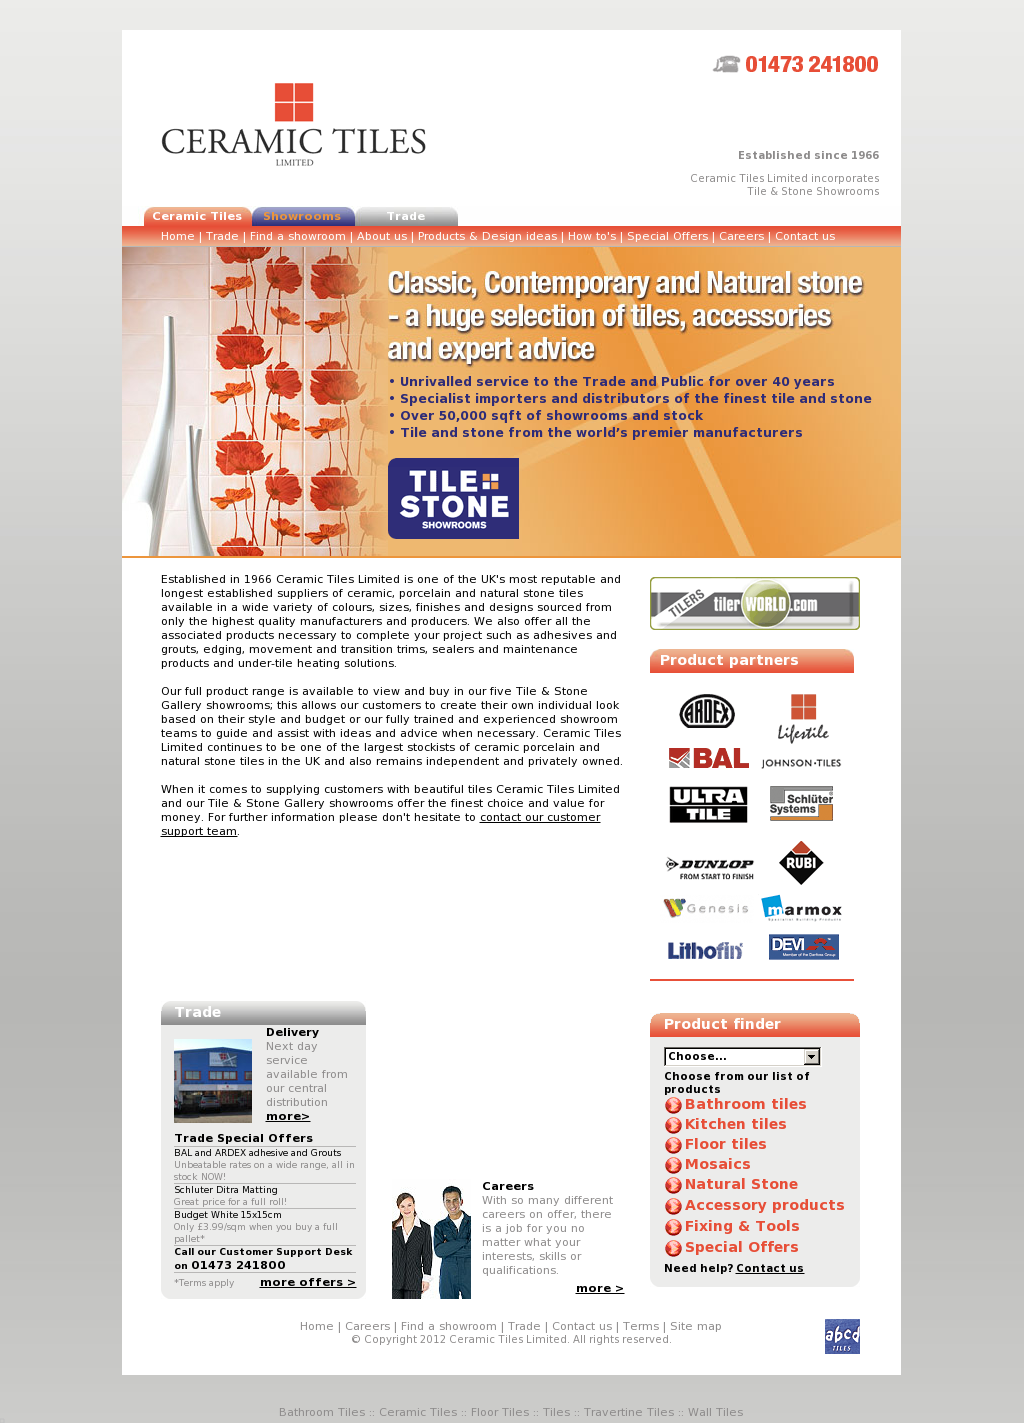 Ceramic Tiles Competitors, Revenue and Employees - Owler Company Profile